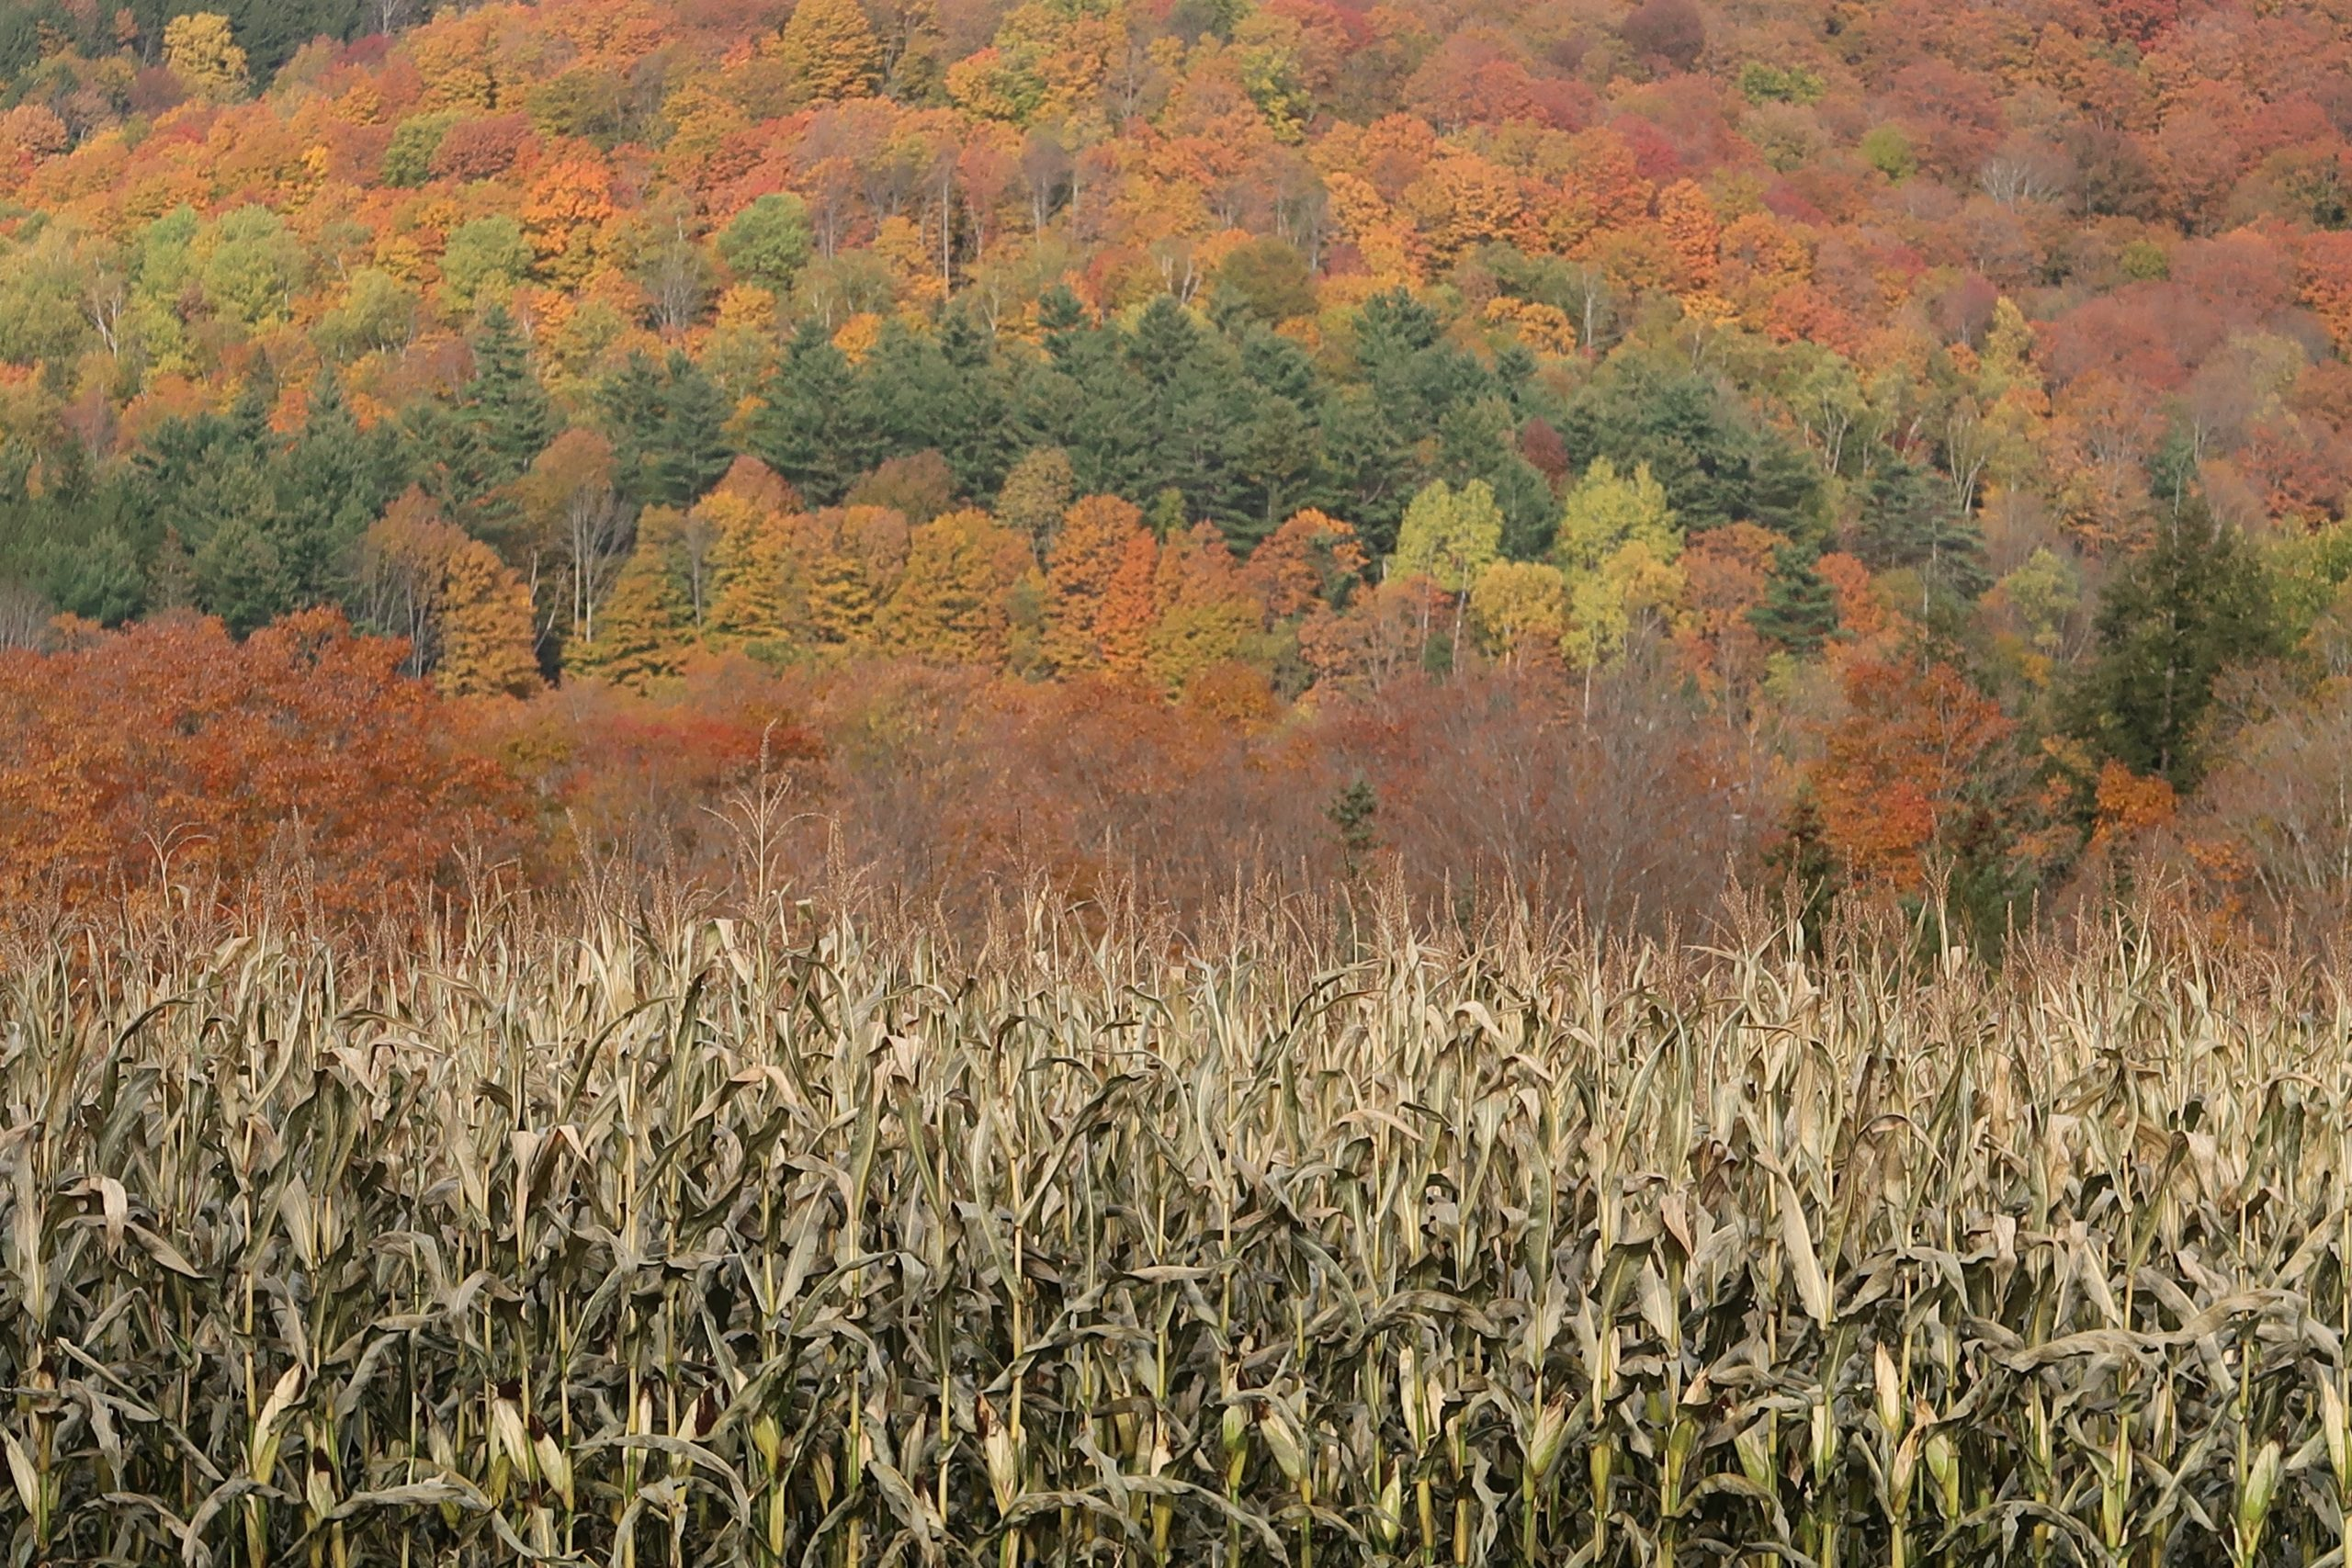 Contest Entry #9 - Corn Contrast - Field of Fall Cornstalks with colorful fall treescape behind